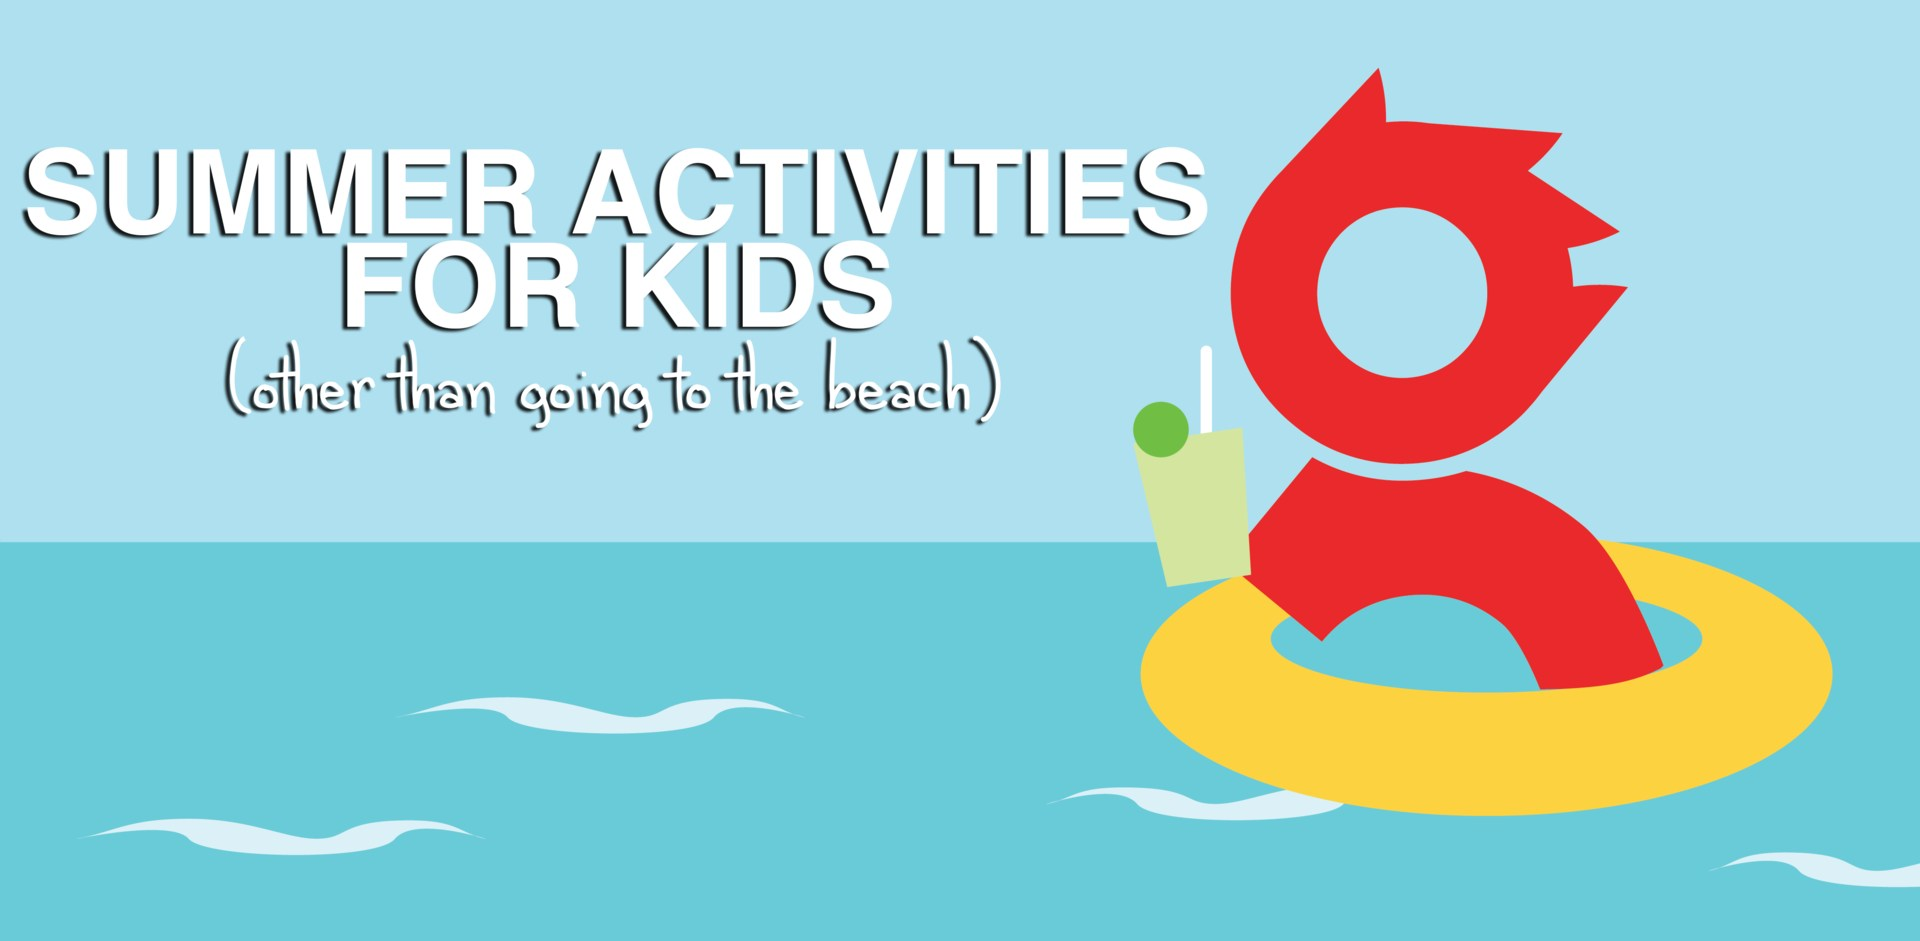 Summer Activity Tips - Spike on an Innertube